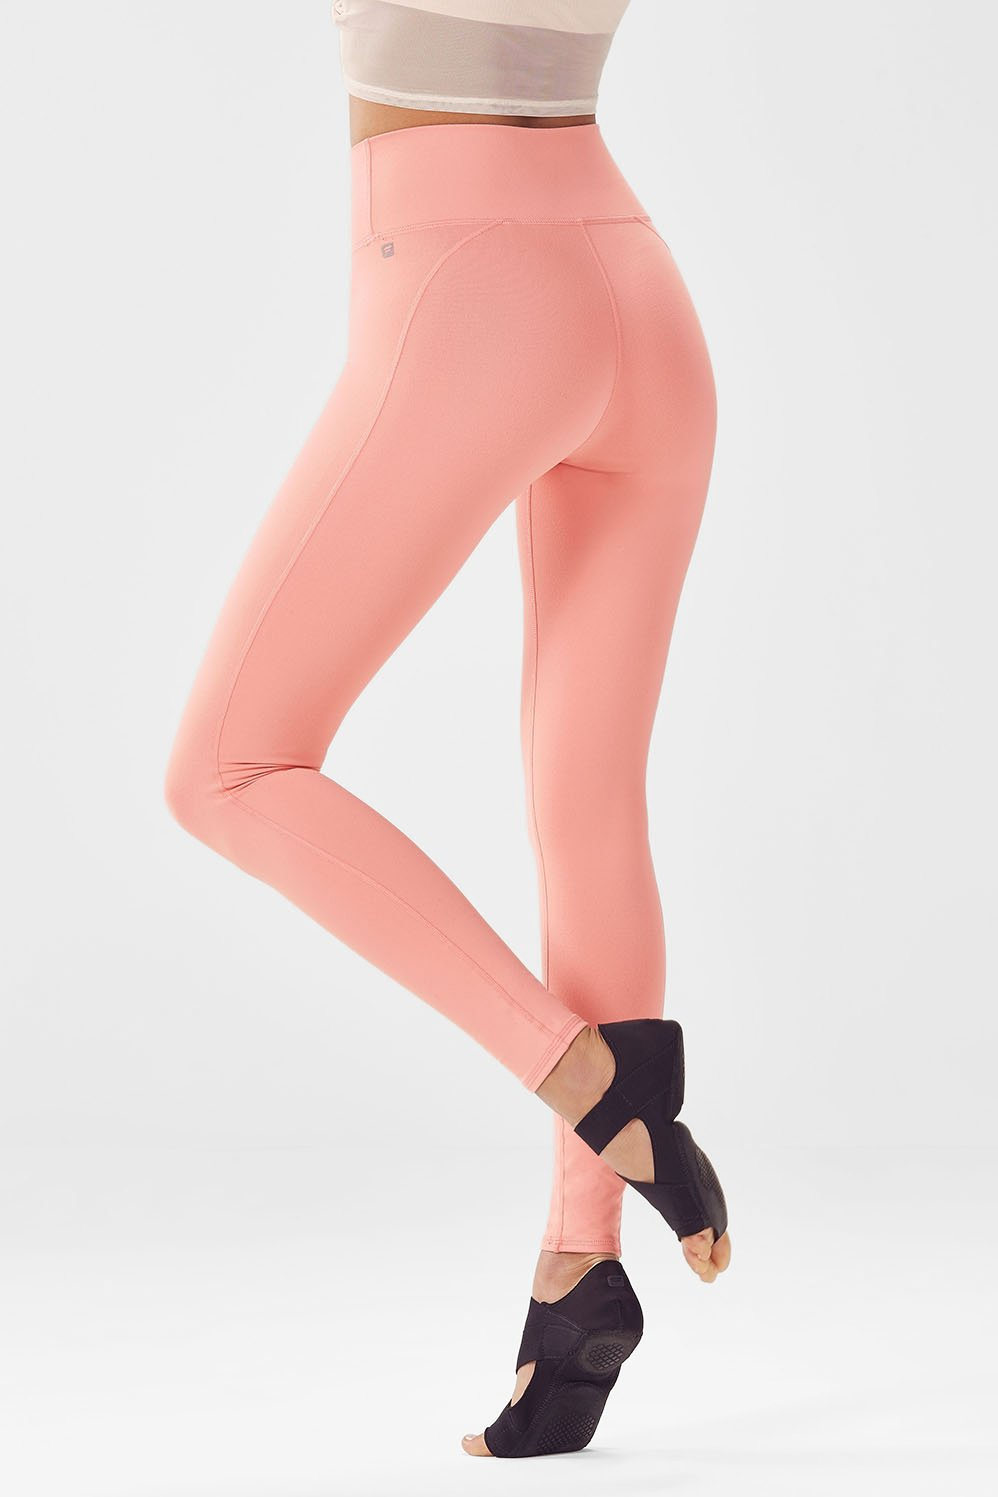 433cc54f97dcf9 High-Waisted Solid PowerHold® Legging - Fabletics